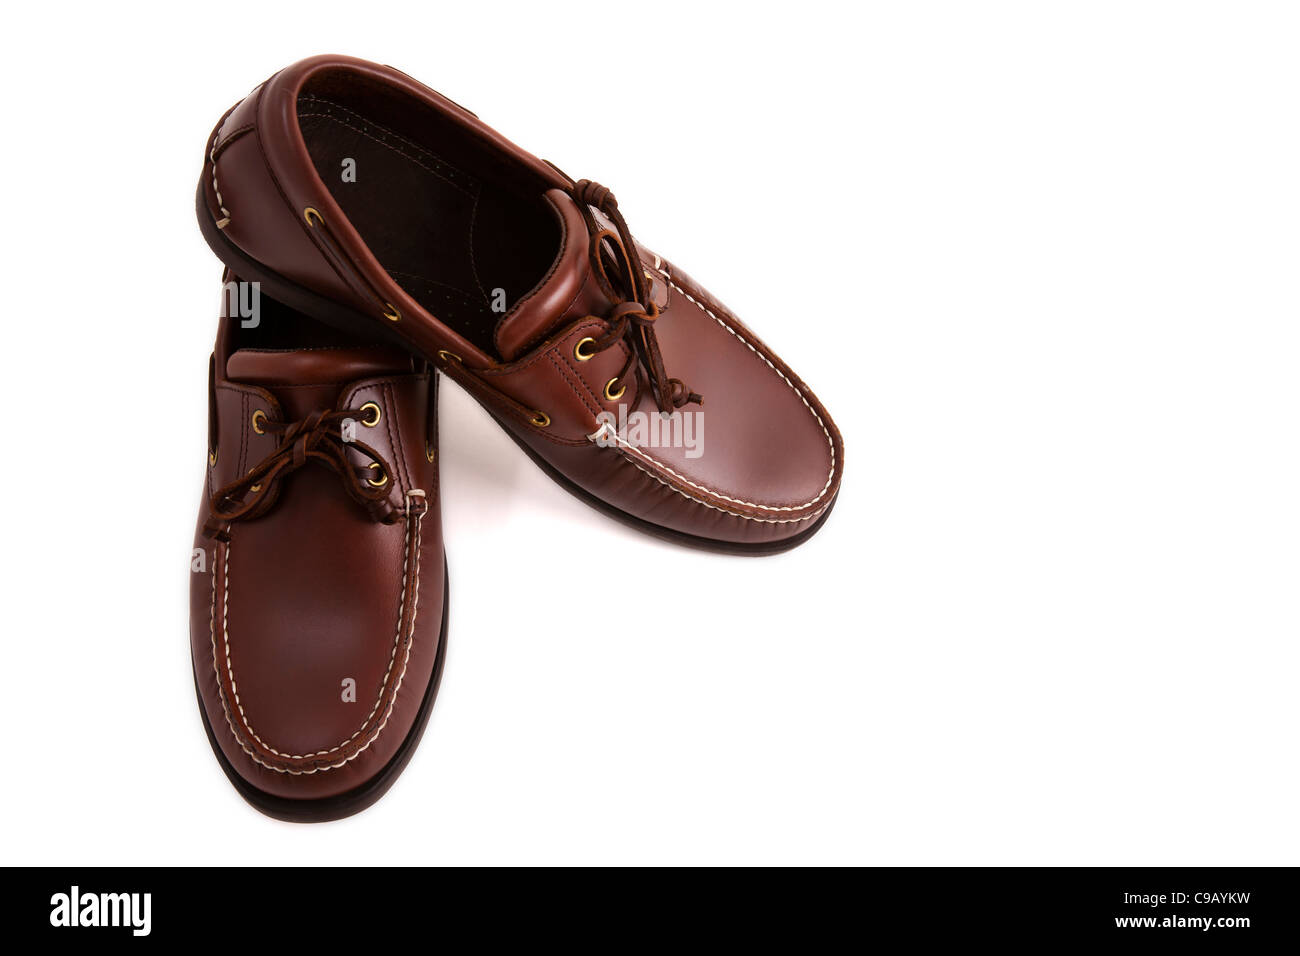 a new casual brown leather shoe stock photo royalty